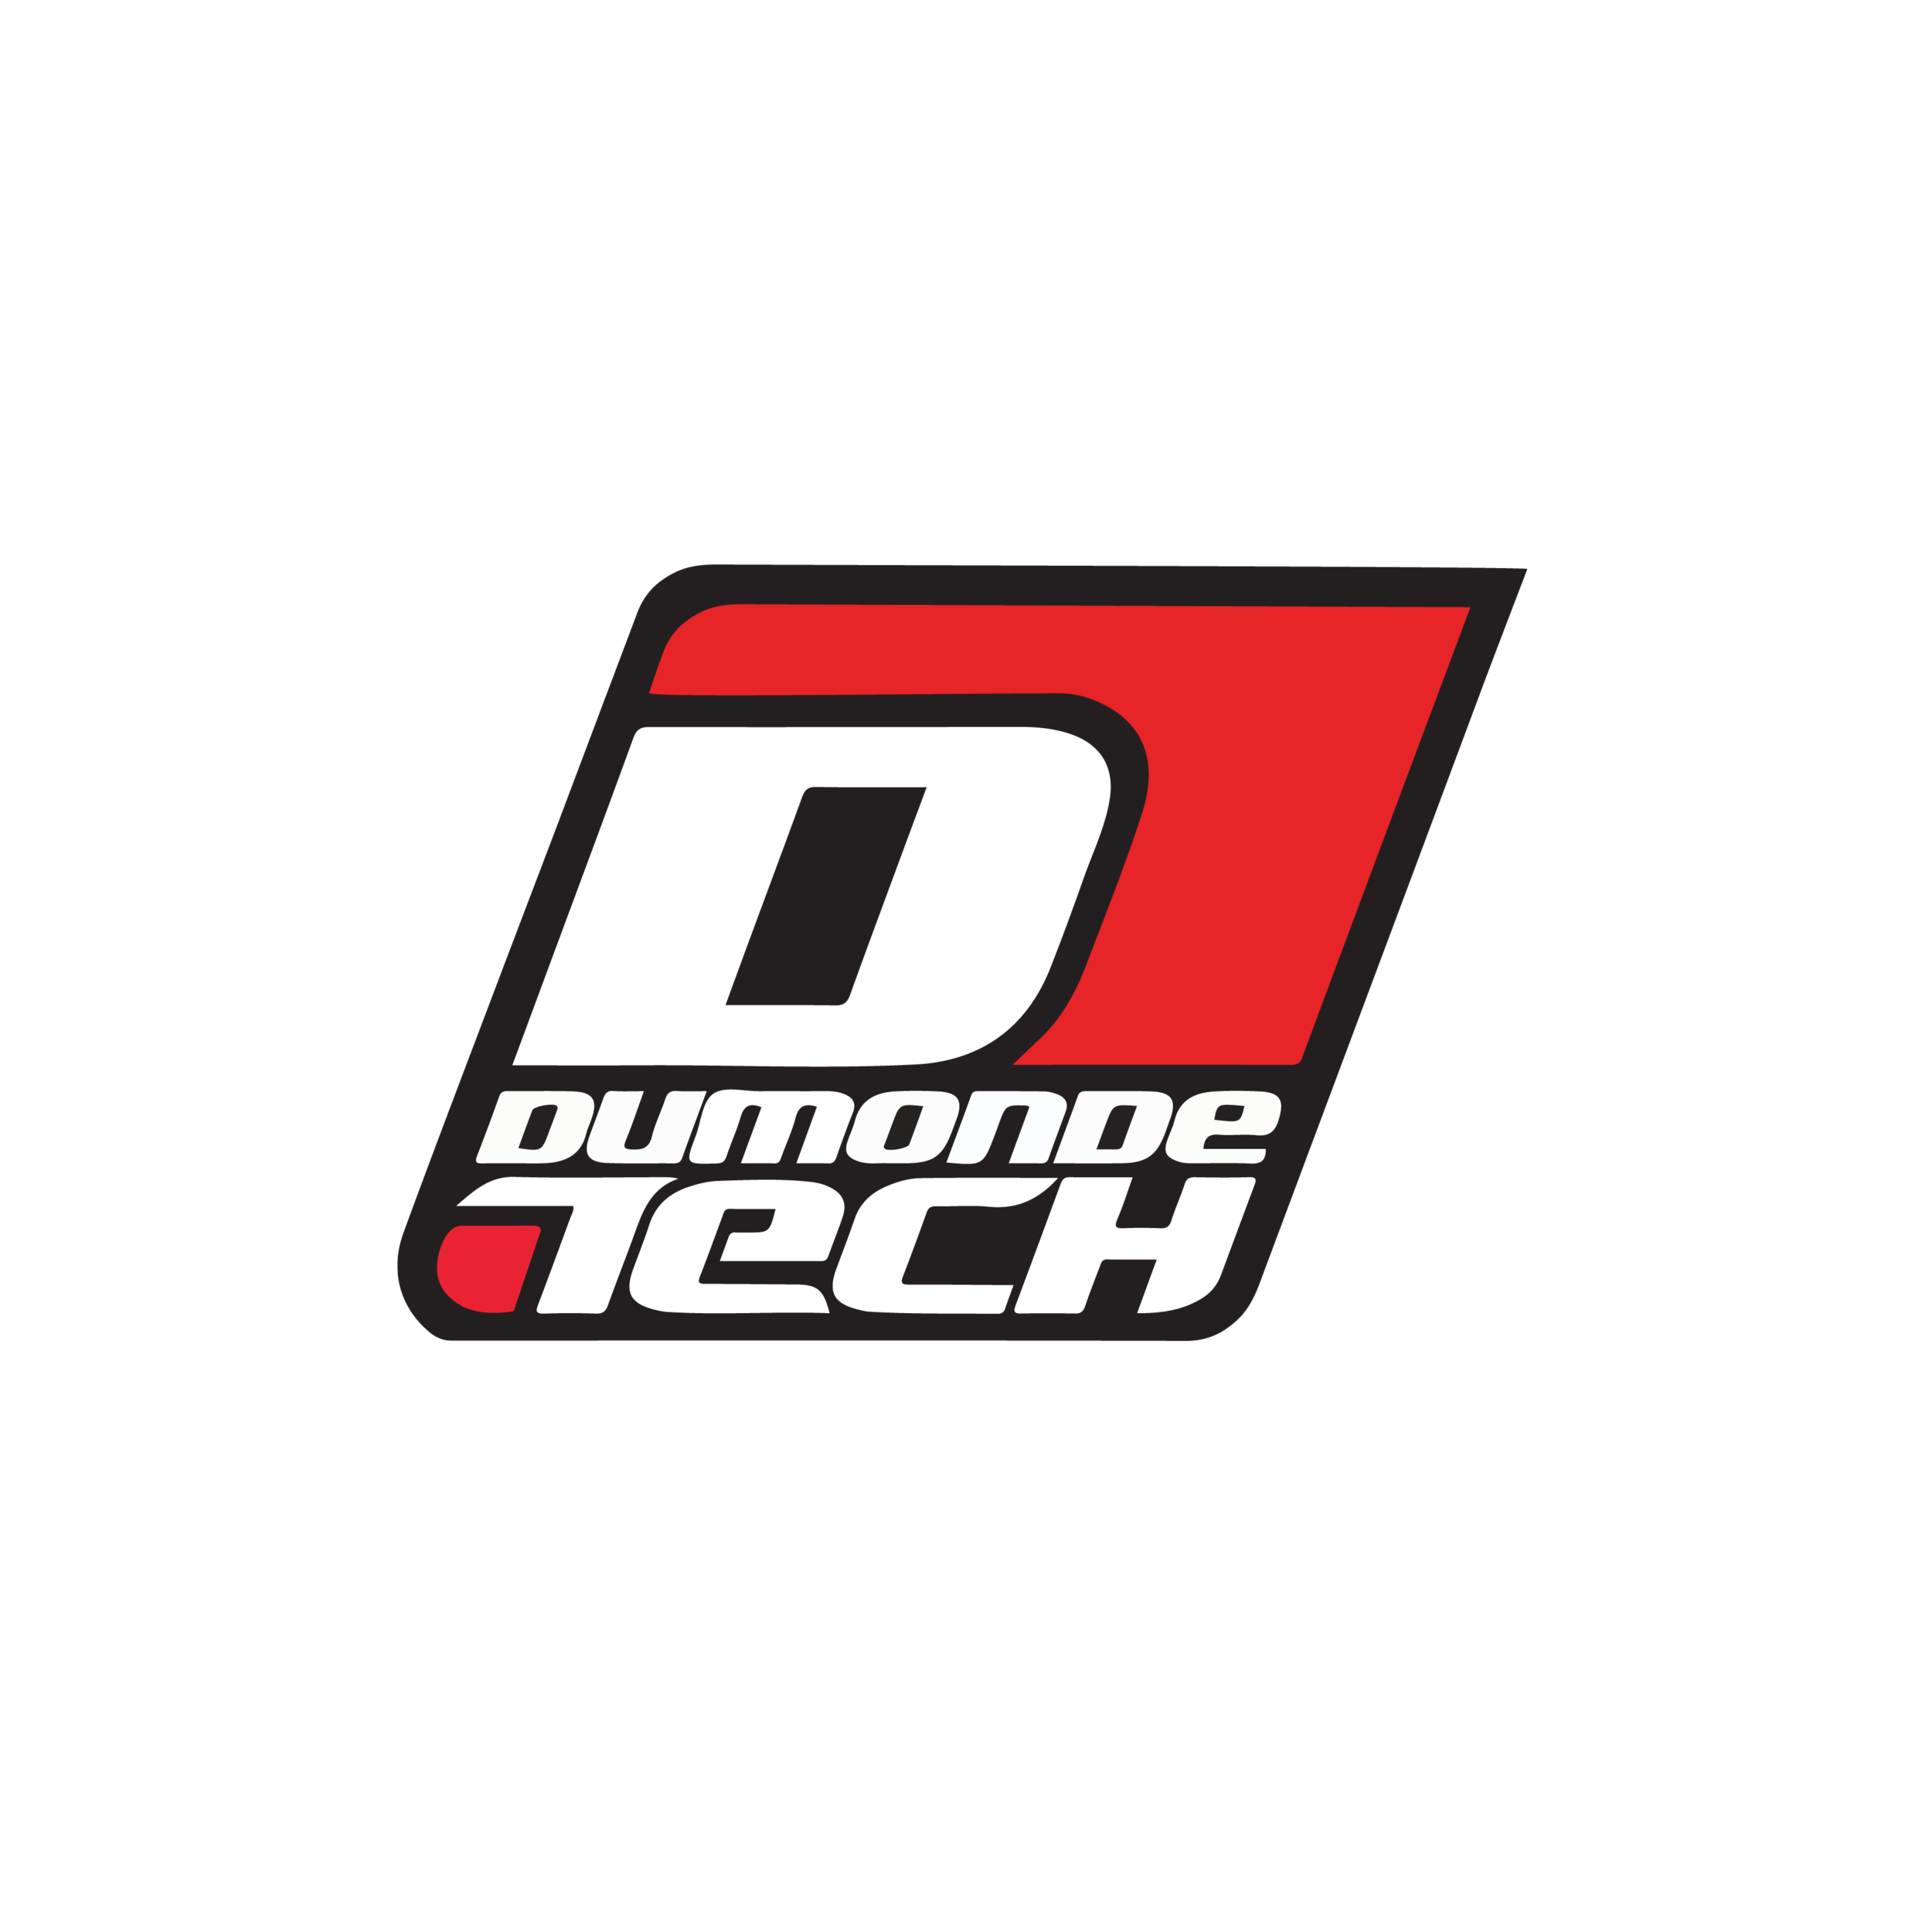 Dumonde Tech racing oils has become one of the world leaders in lubrication development and in sales of high performance lubricants for motorsports and bicycles as well as in green, earth-friendly oil technologies.